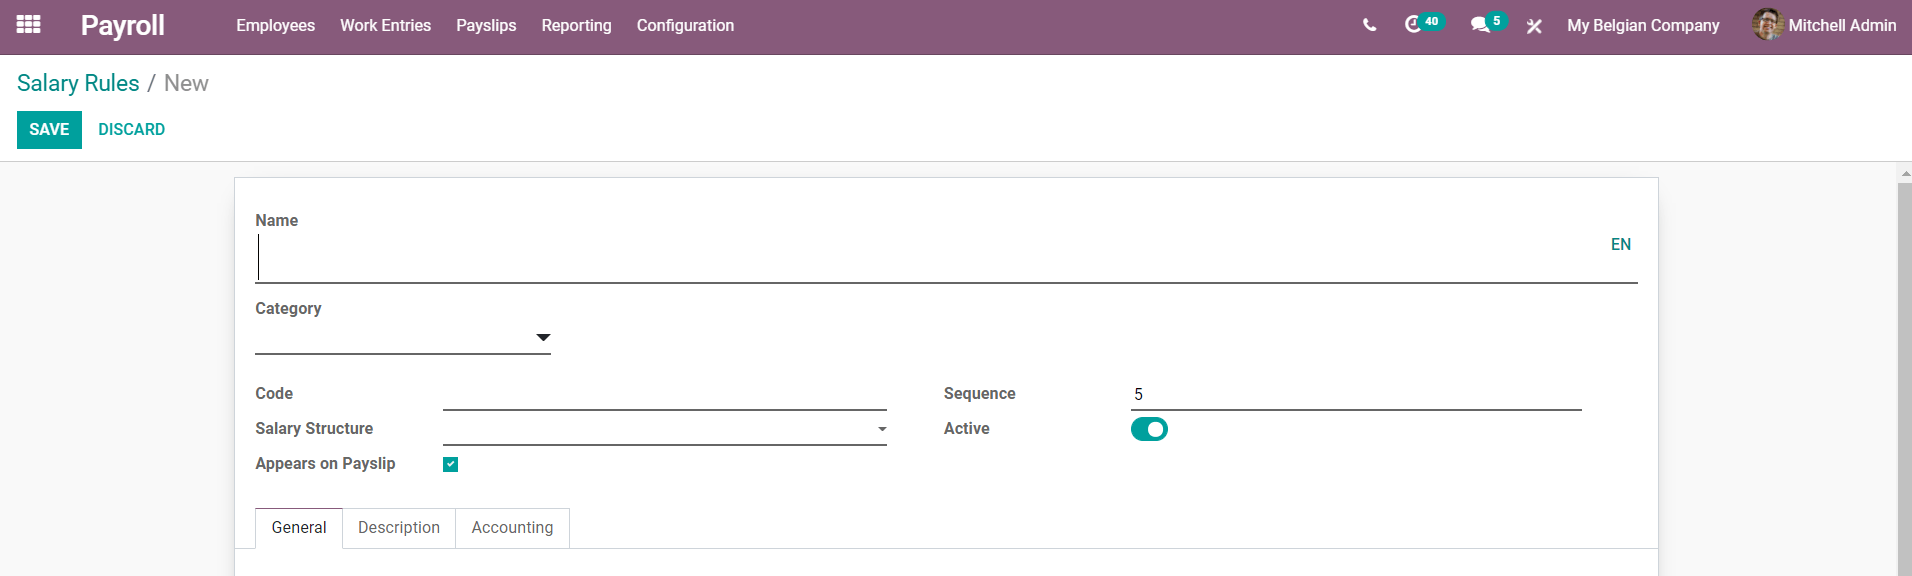 salary-structure-and-rules-configuration-in-odoo-payroll-module